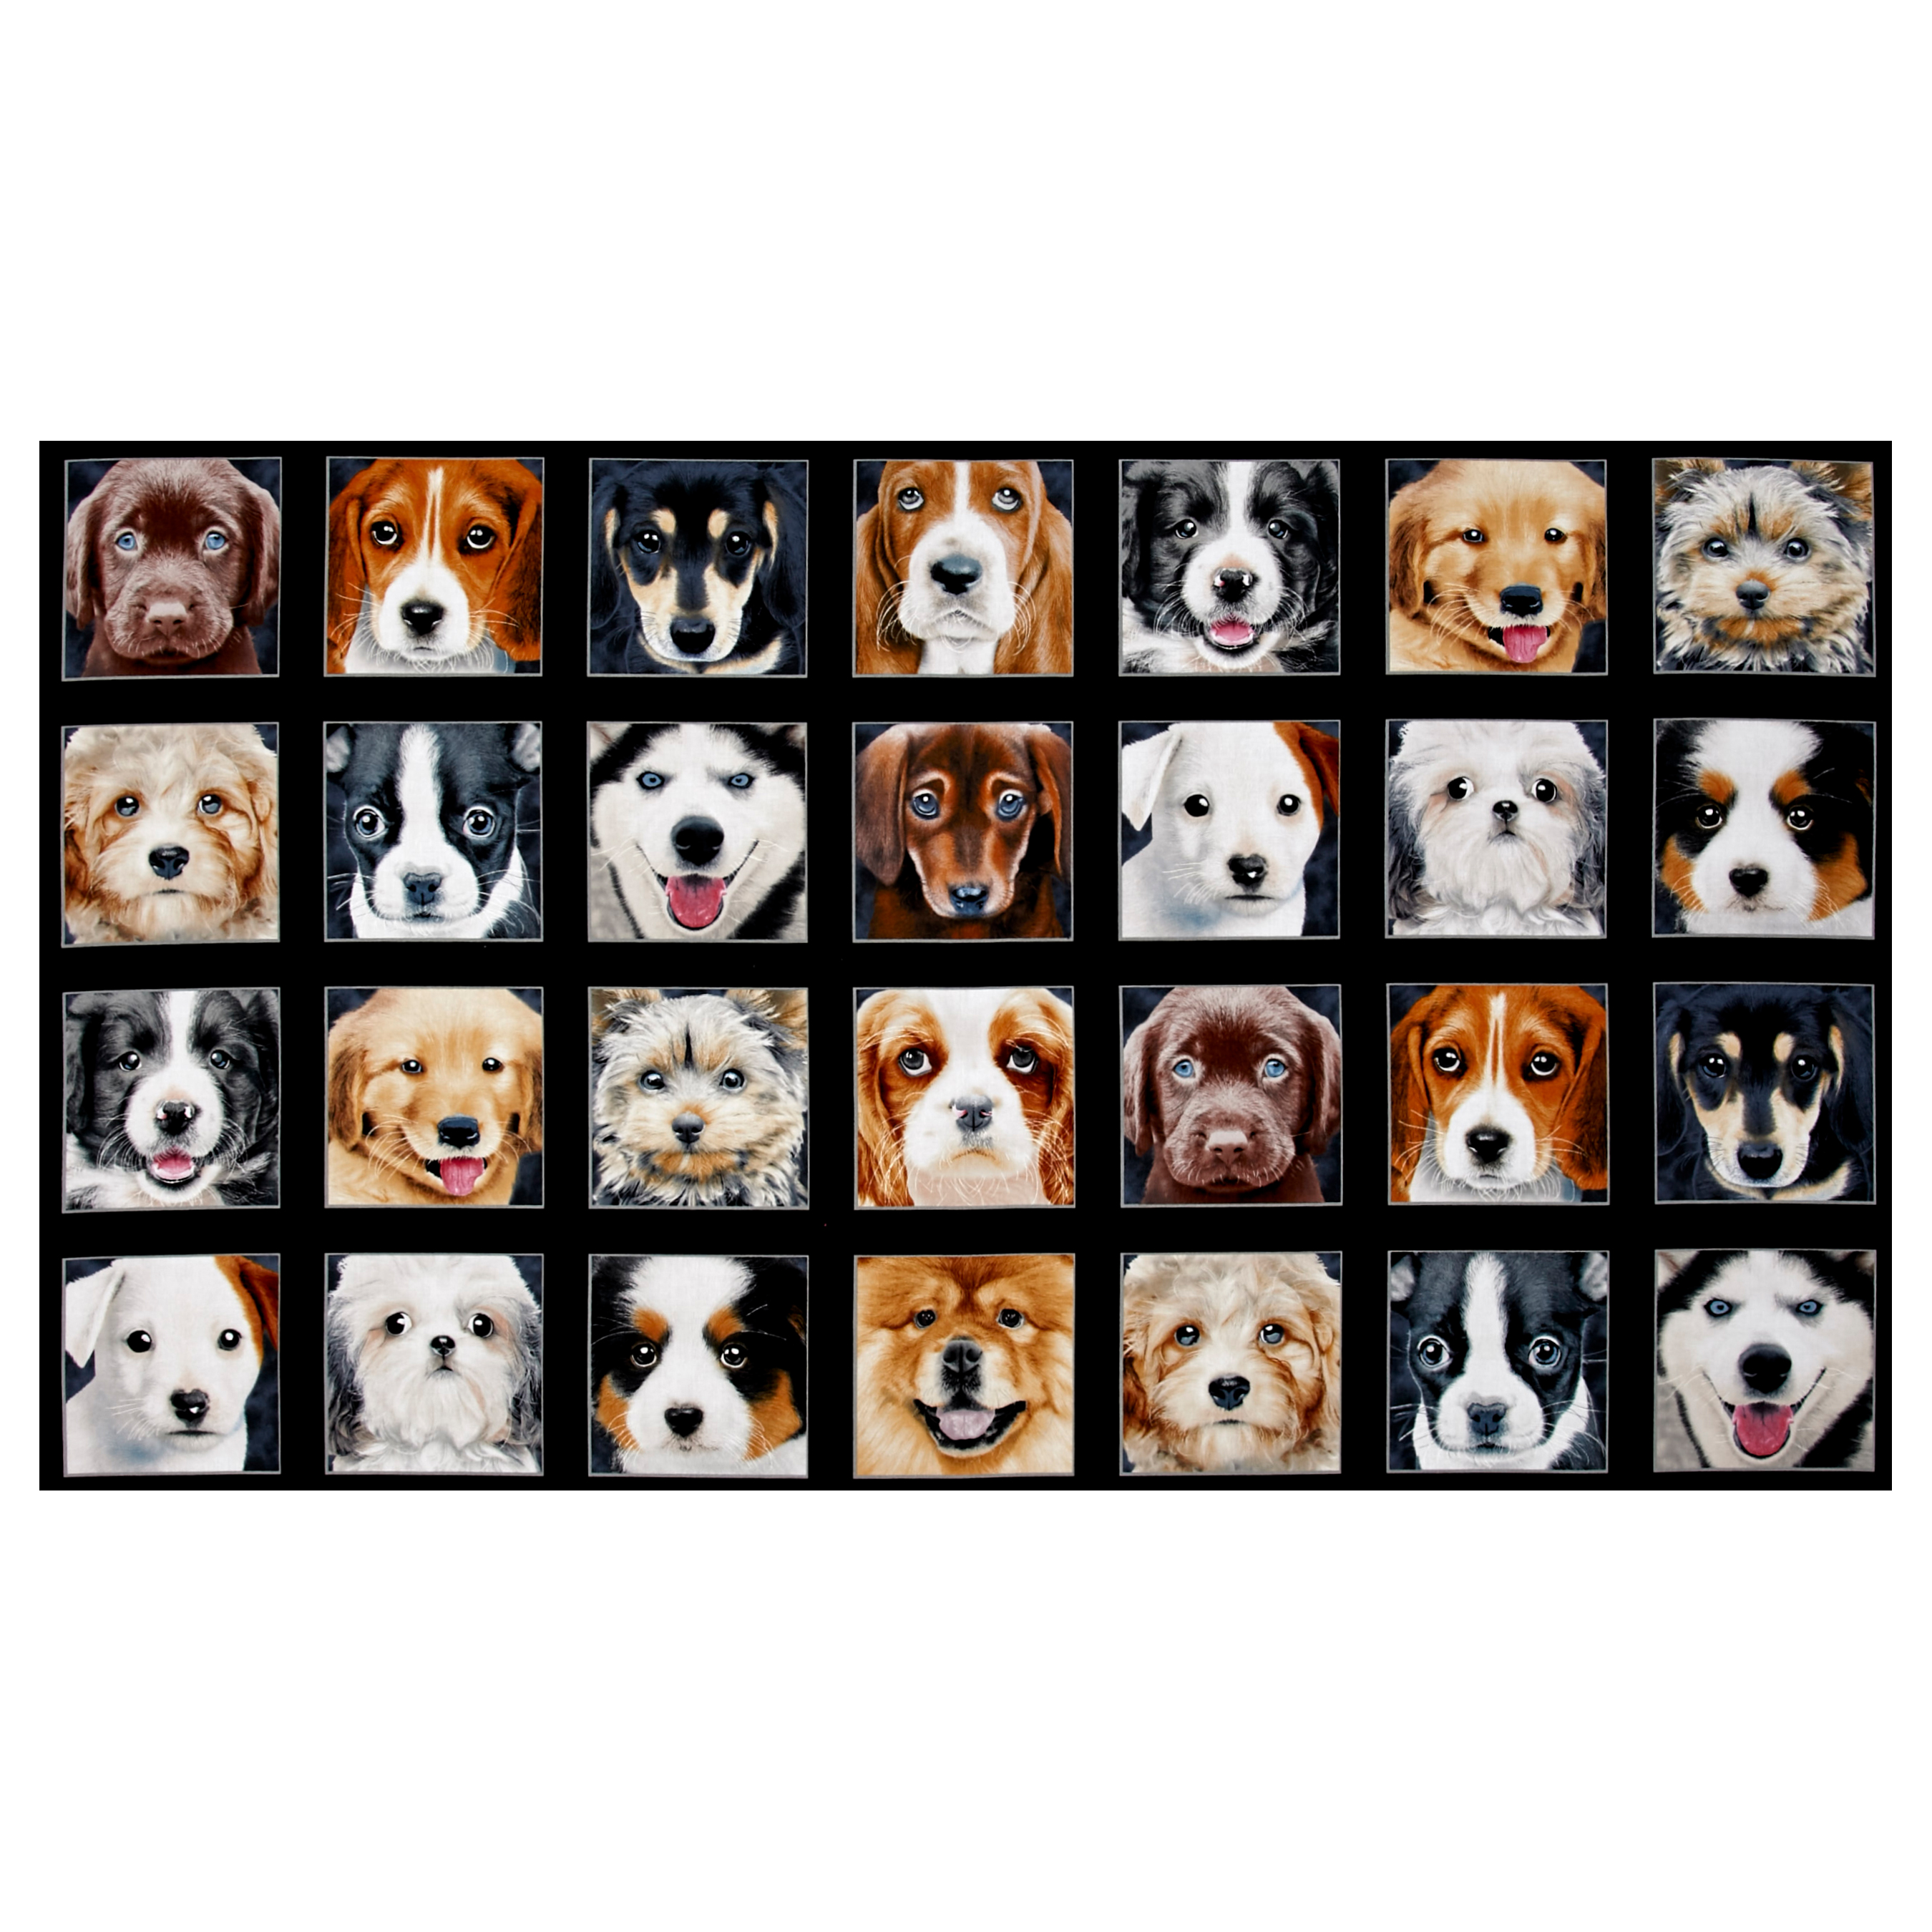 Adorable Pets Dogs 23.5' inch Panel Black Fabric